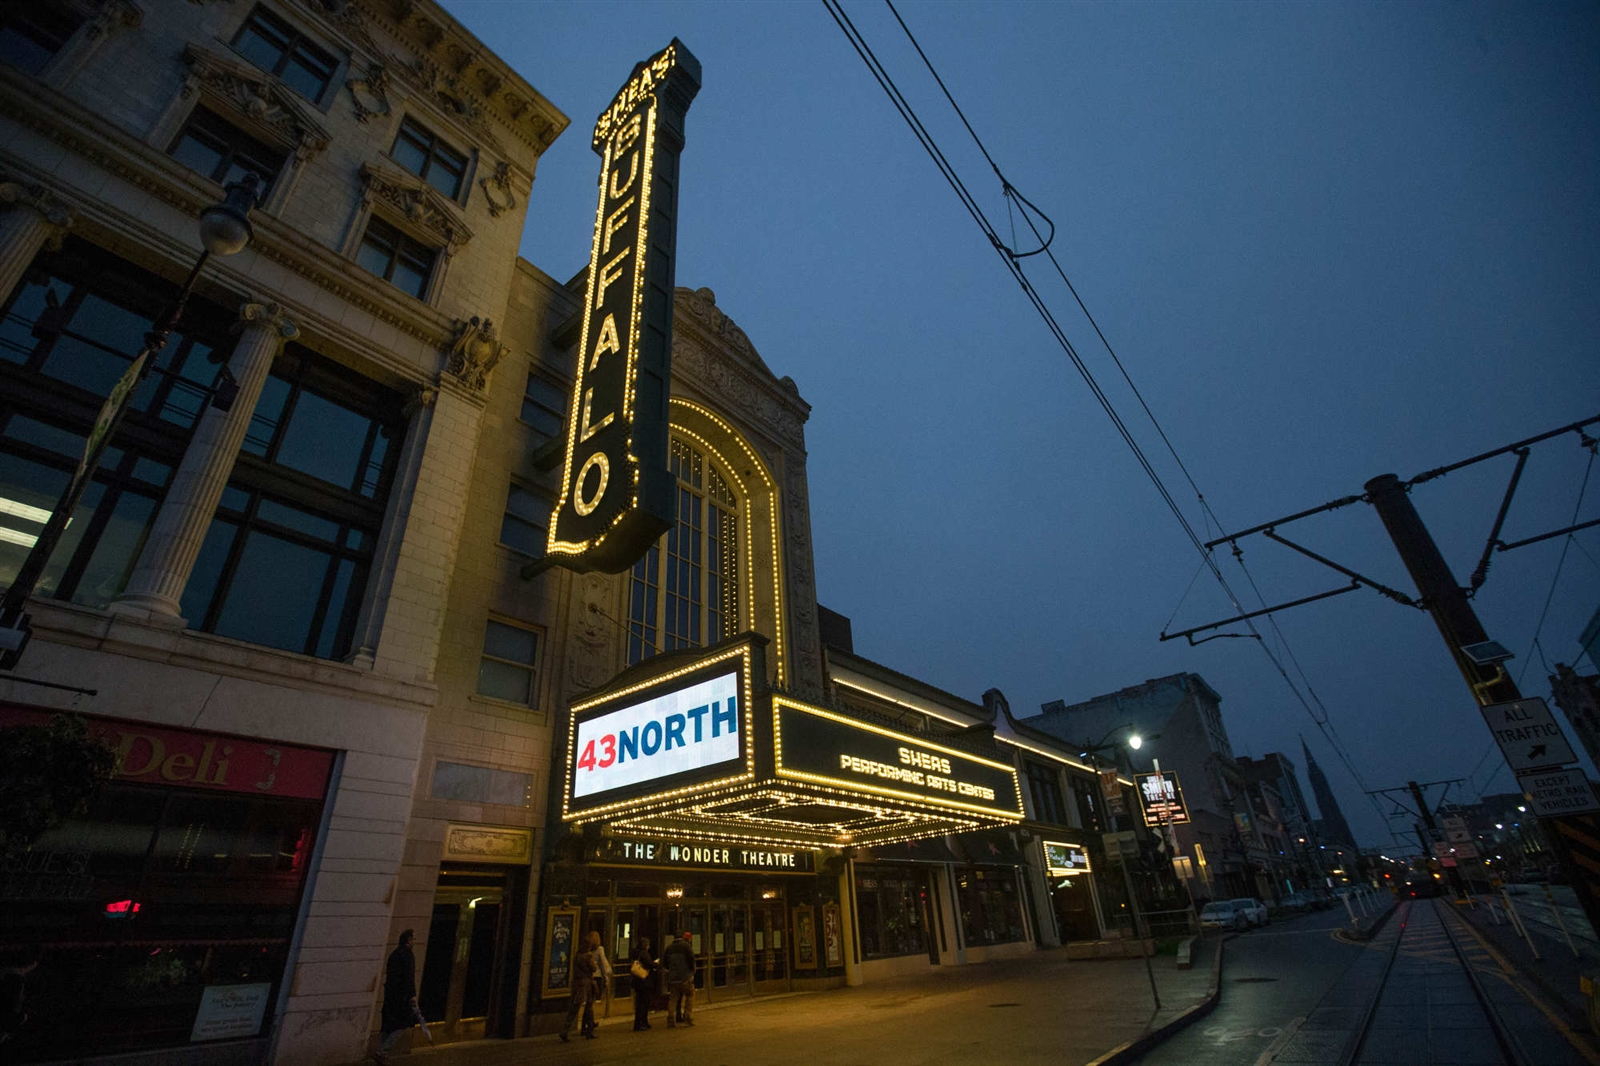 Shea's Buffalo Theatre on the night of the 43 North finals, Thursday, Oct. 27, 2016.  (Derek Gee/Buffalo News)